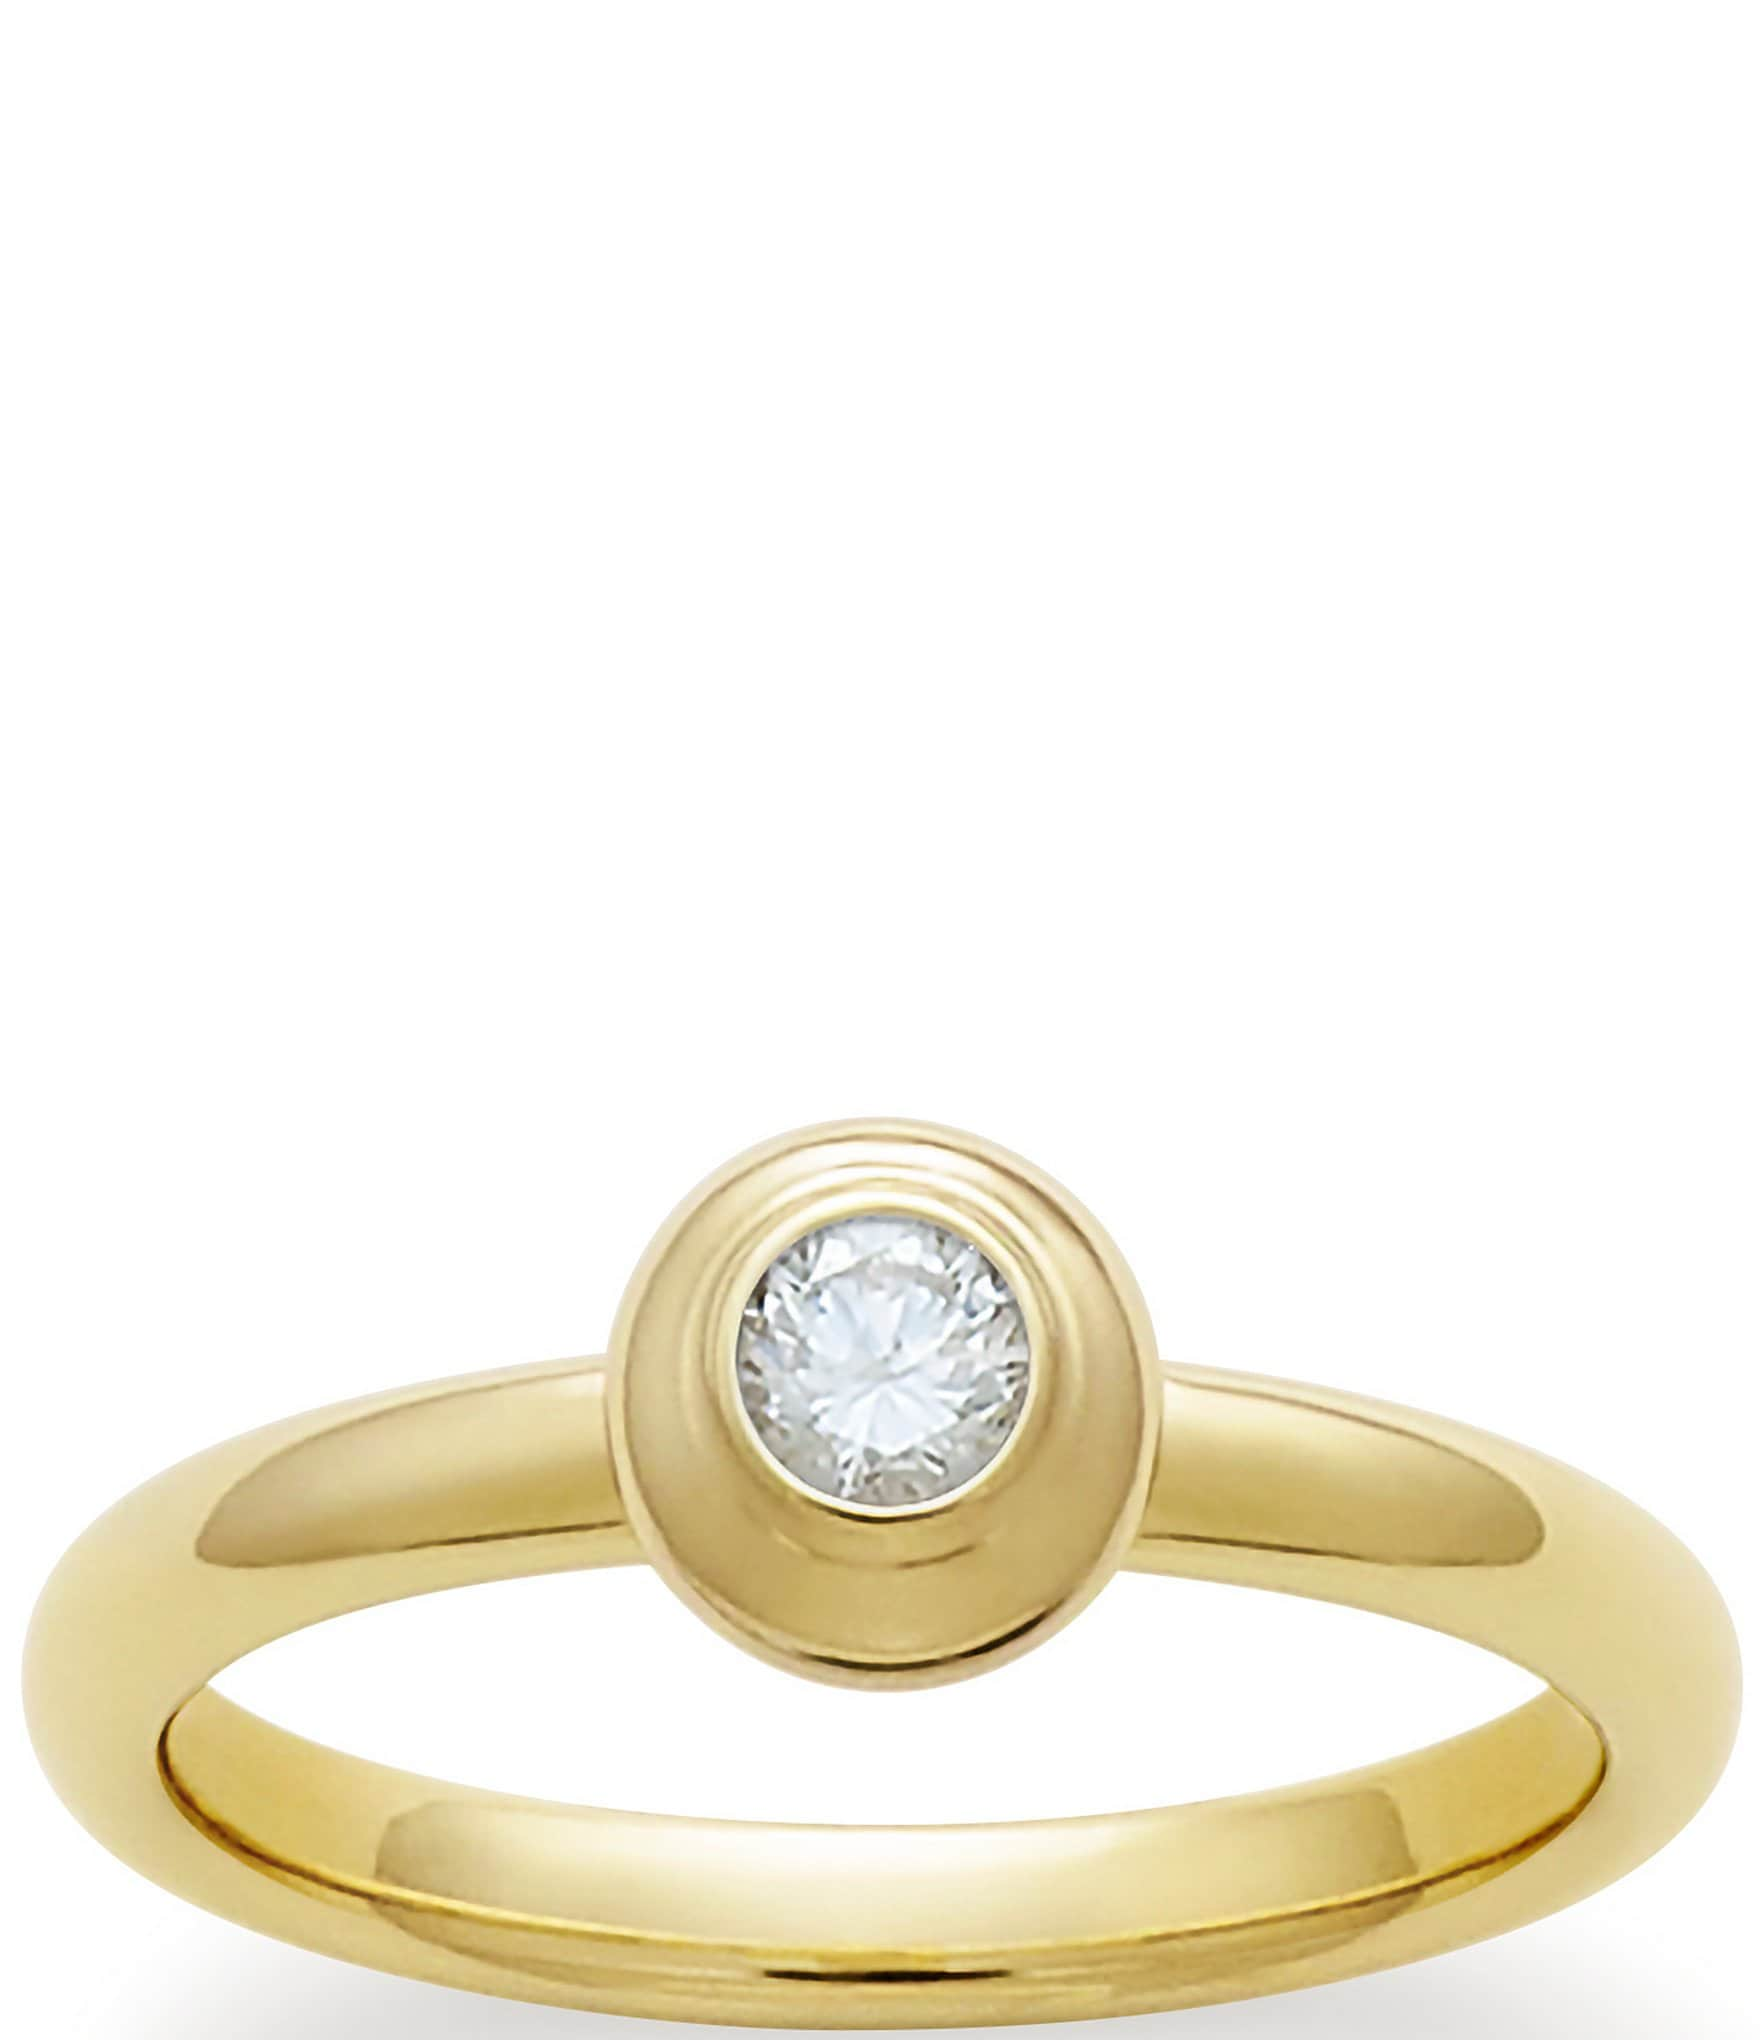 James Avery Remembrance Ring April Birthstone With White Diamond